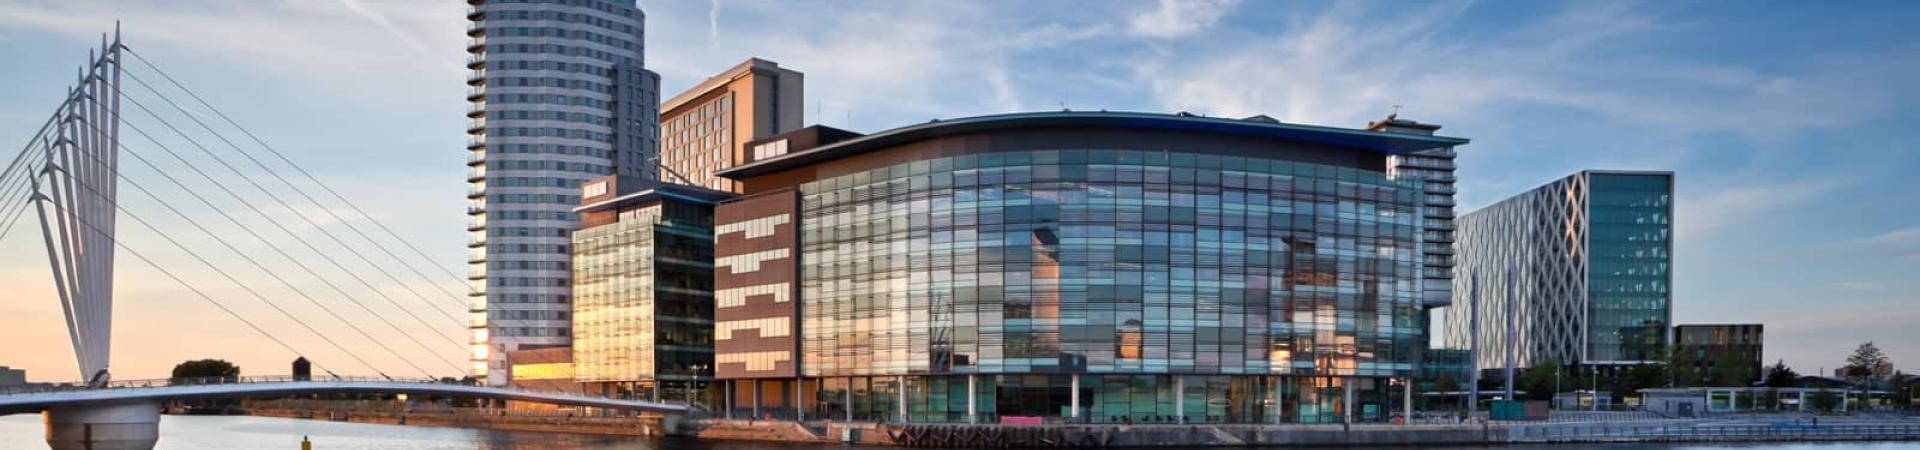 Student accommodation in Salford, near to Salford Quays